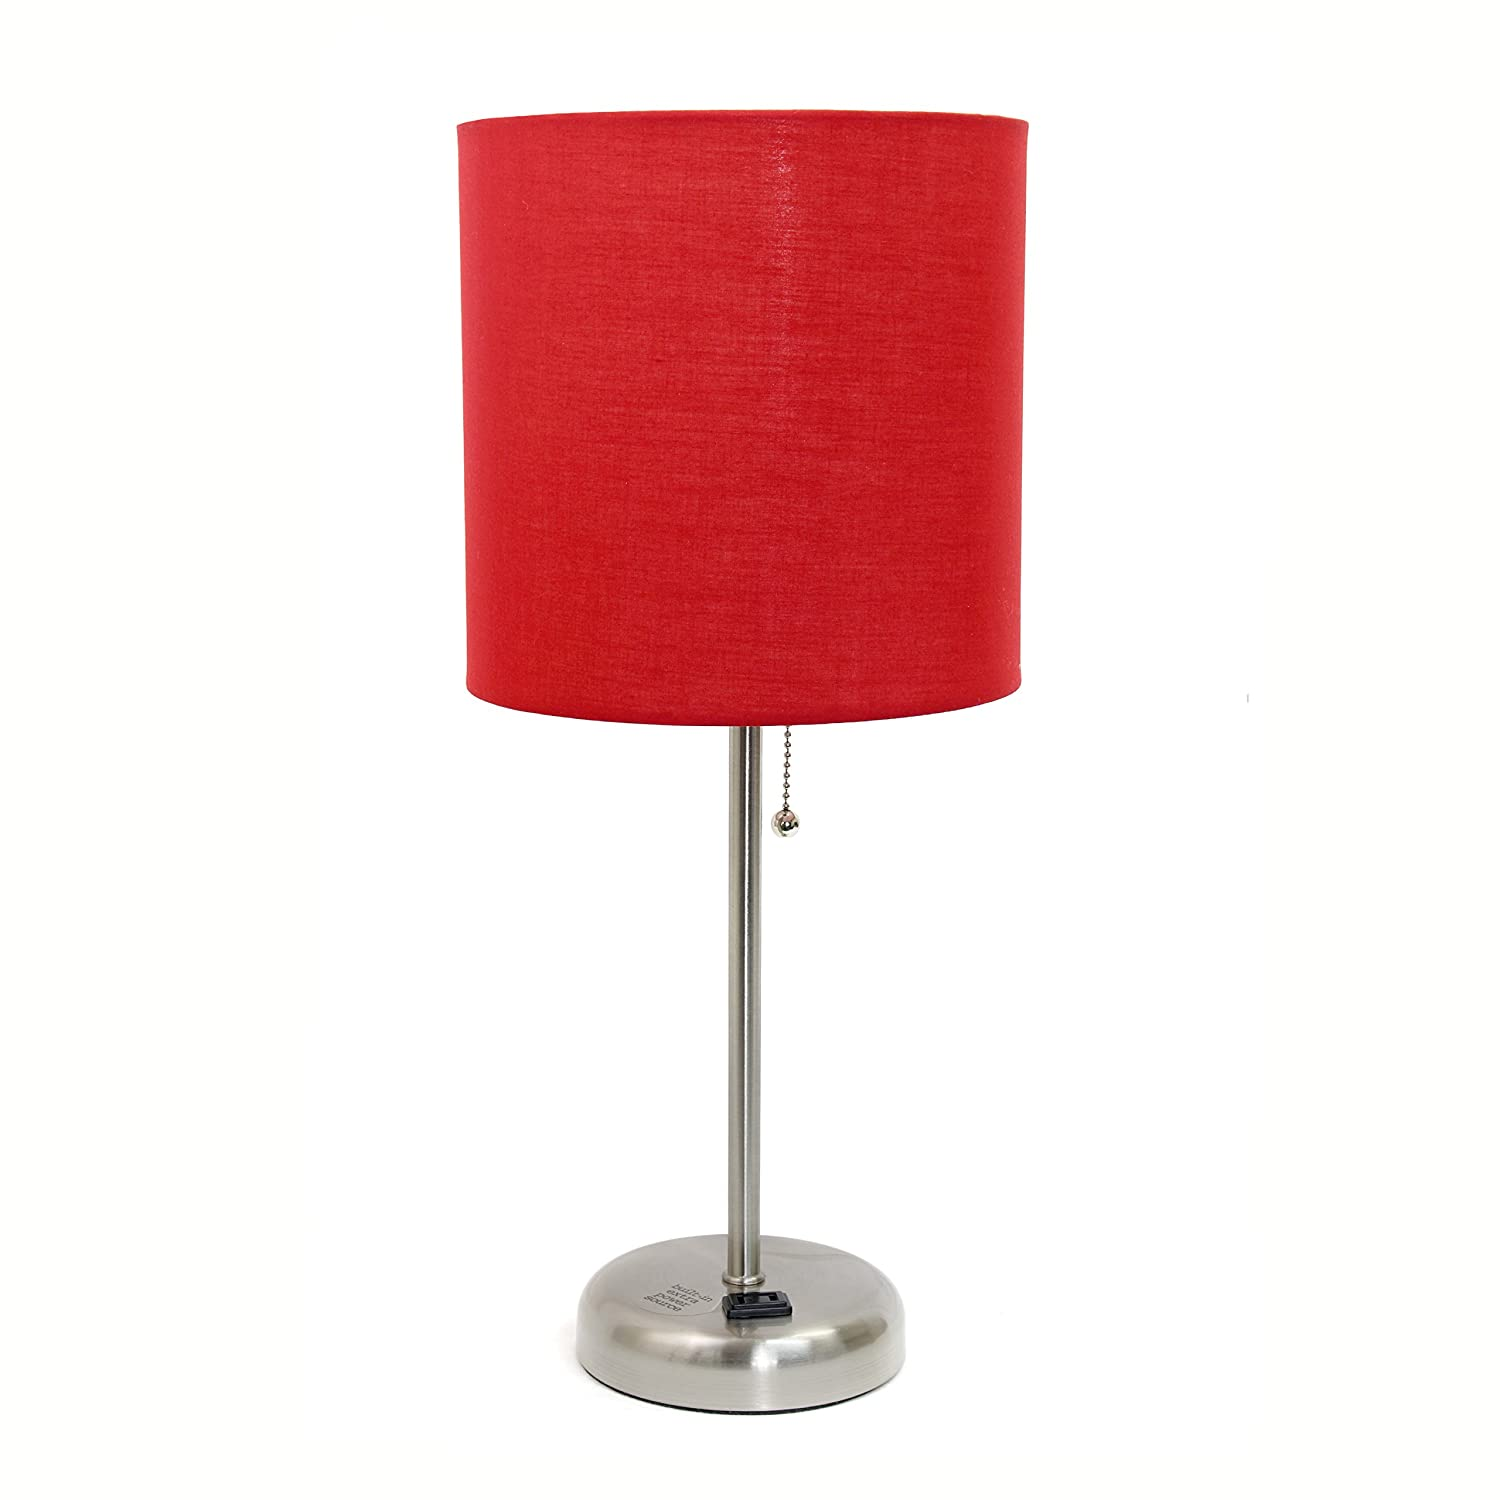 Limelights LT2024-RED Stick Brushed Steel Lamp with Charging Outlet and Fabric Shade, 19.50 x 8.50 x 8.50 inches, Red